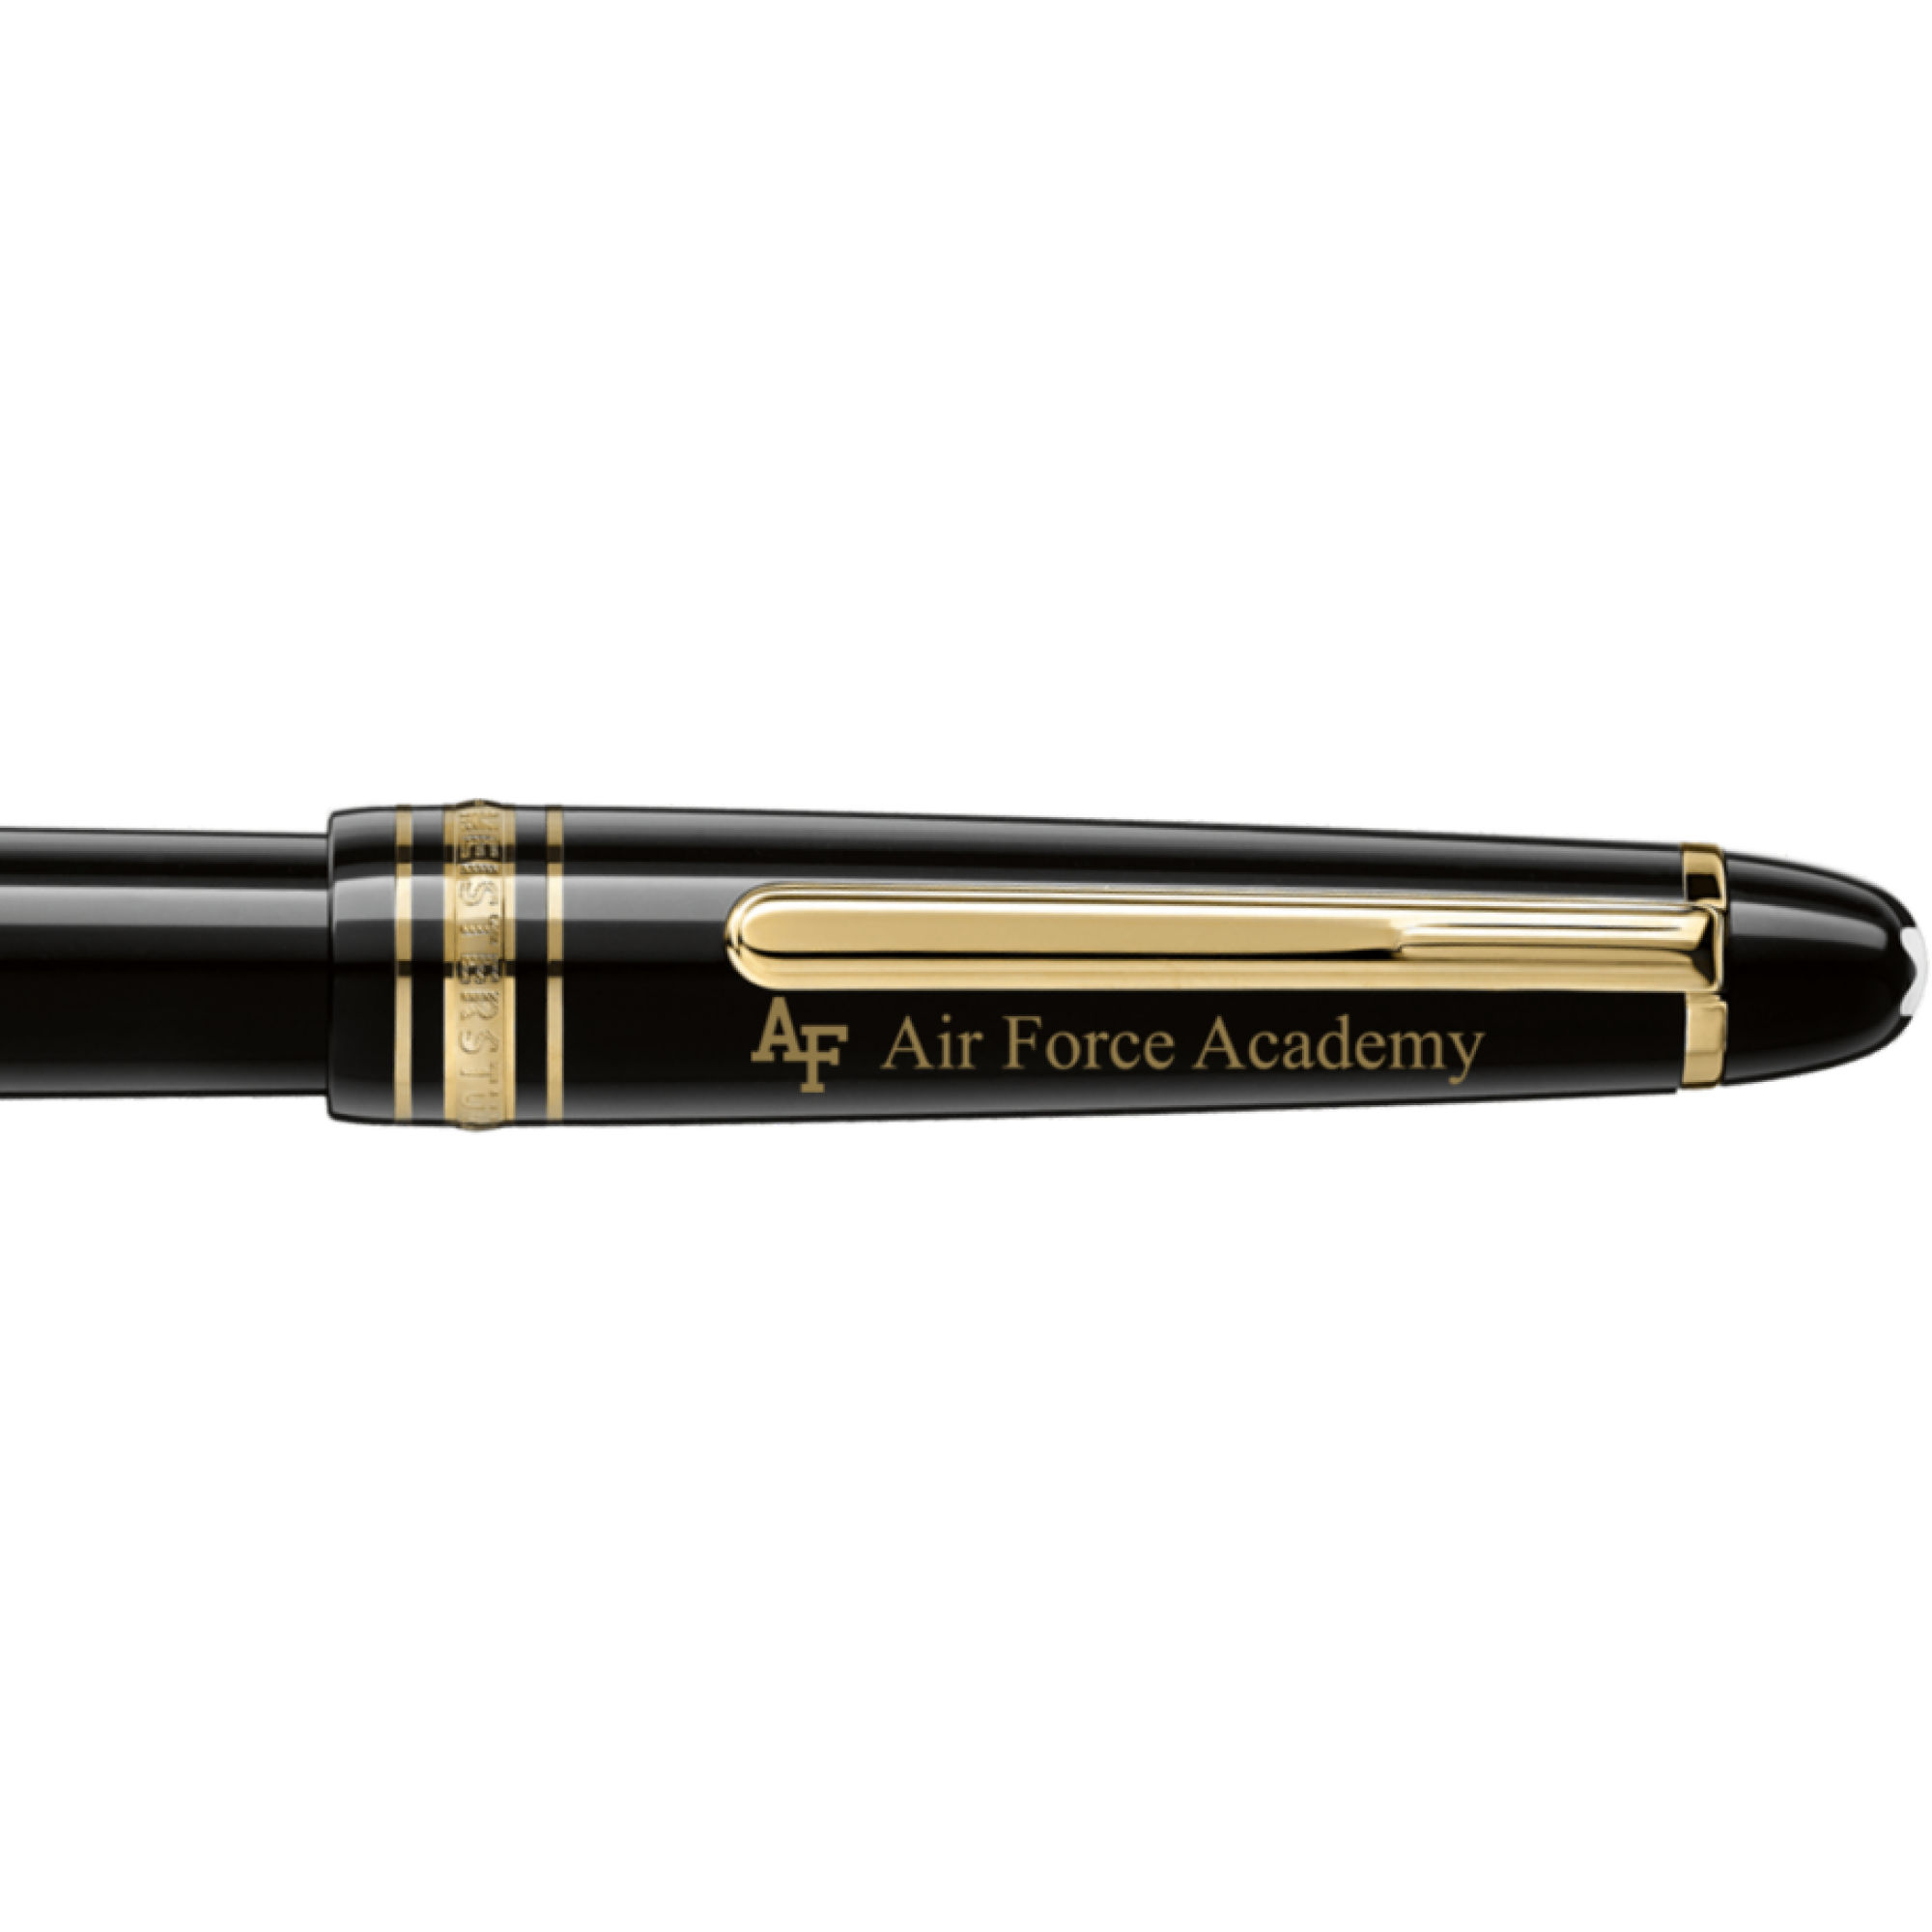 US Air Force Academy Montblanc Meisterstück Classique Fountain Pen in Gold